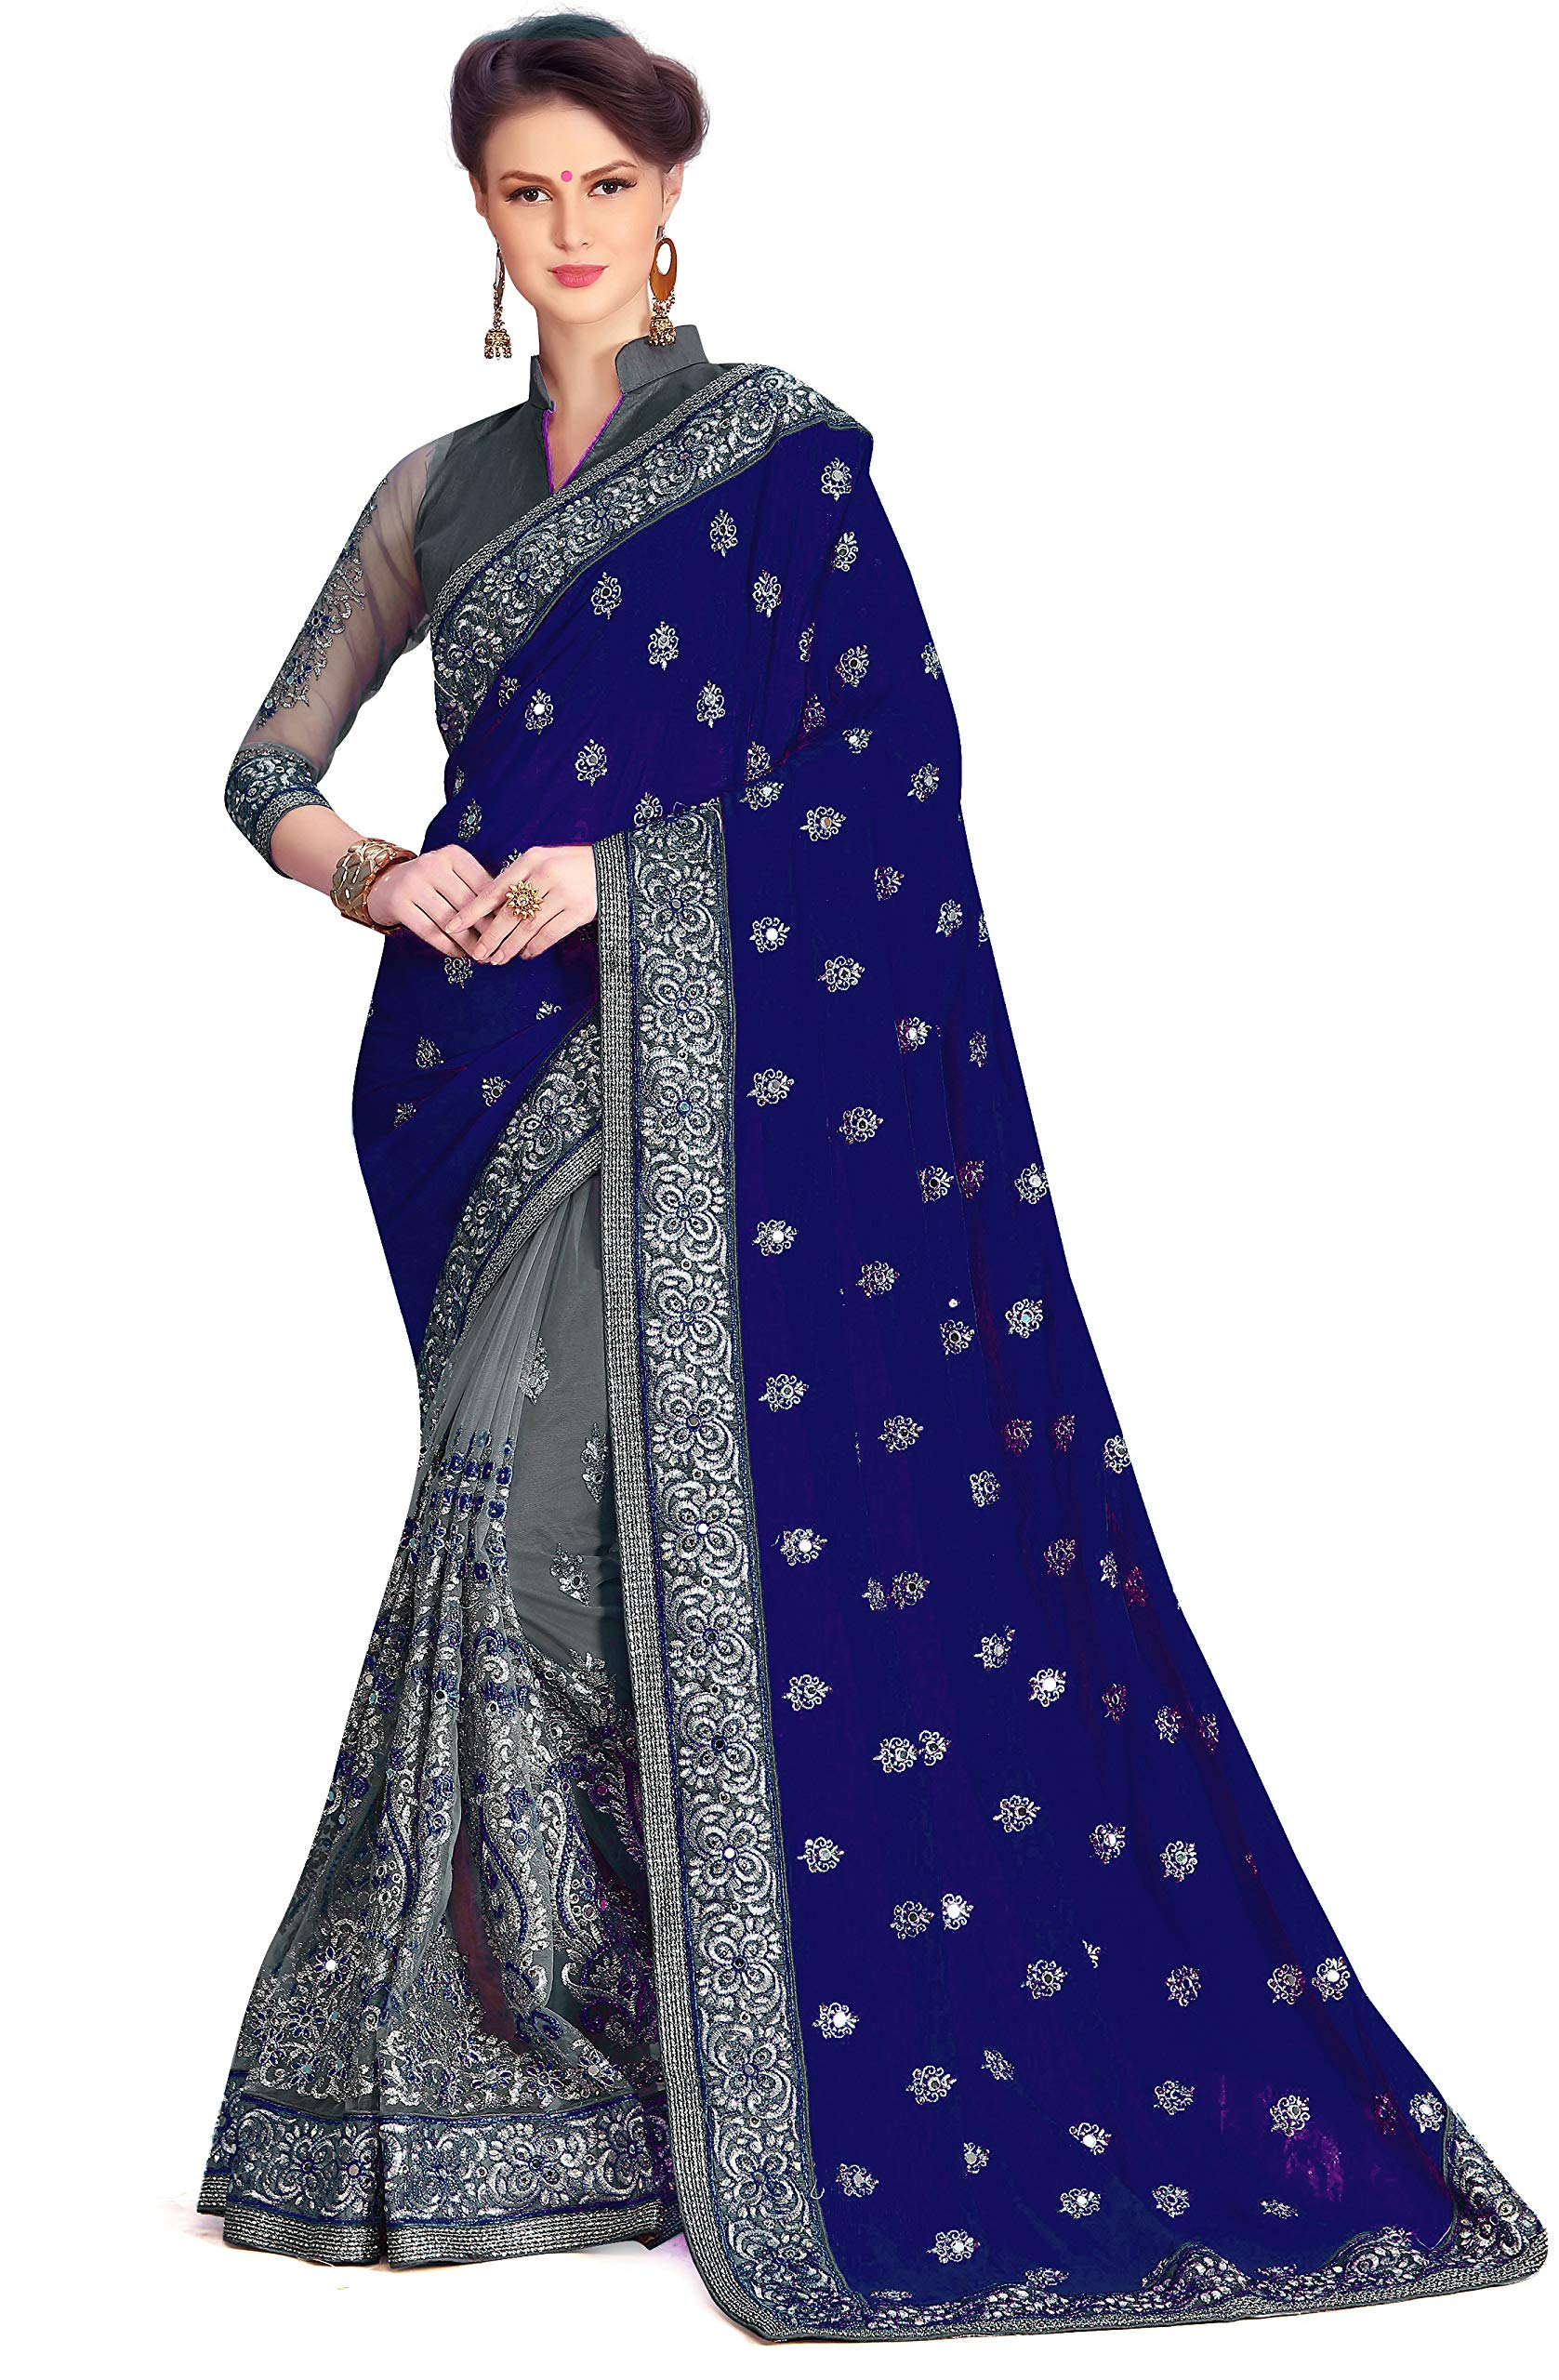 Women's Heavy Embroidery Work Satin & Net Sarees